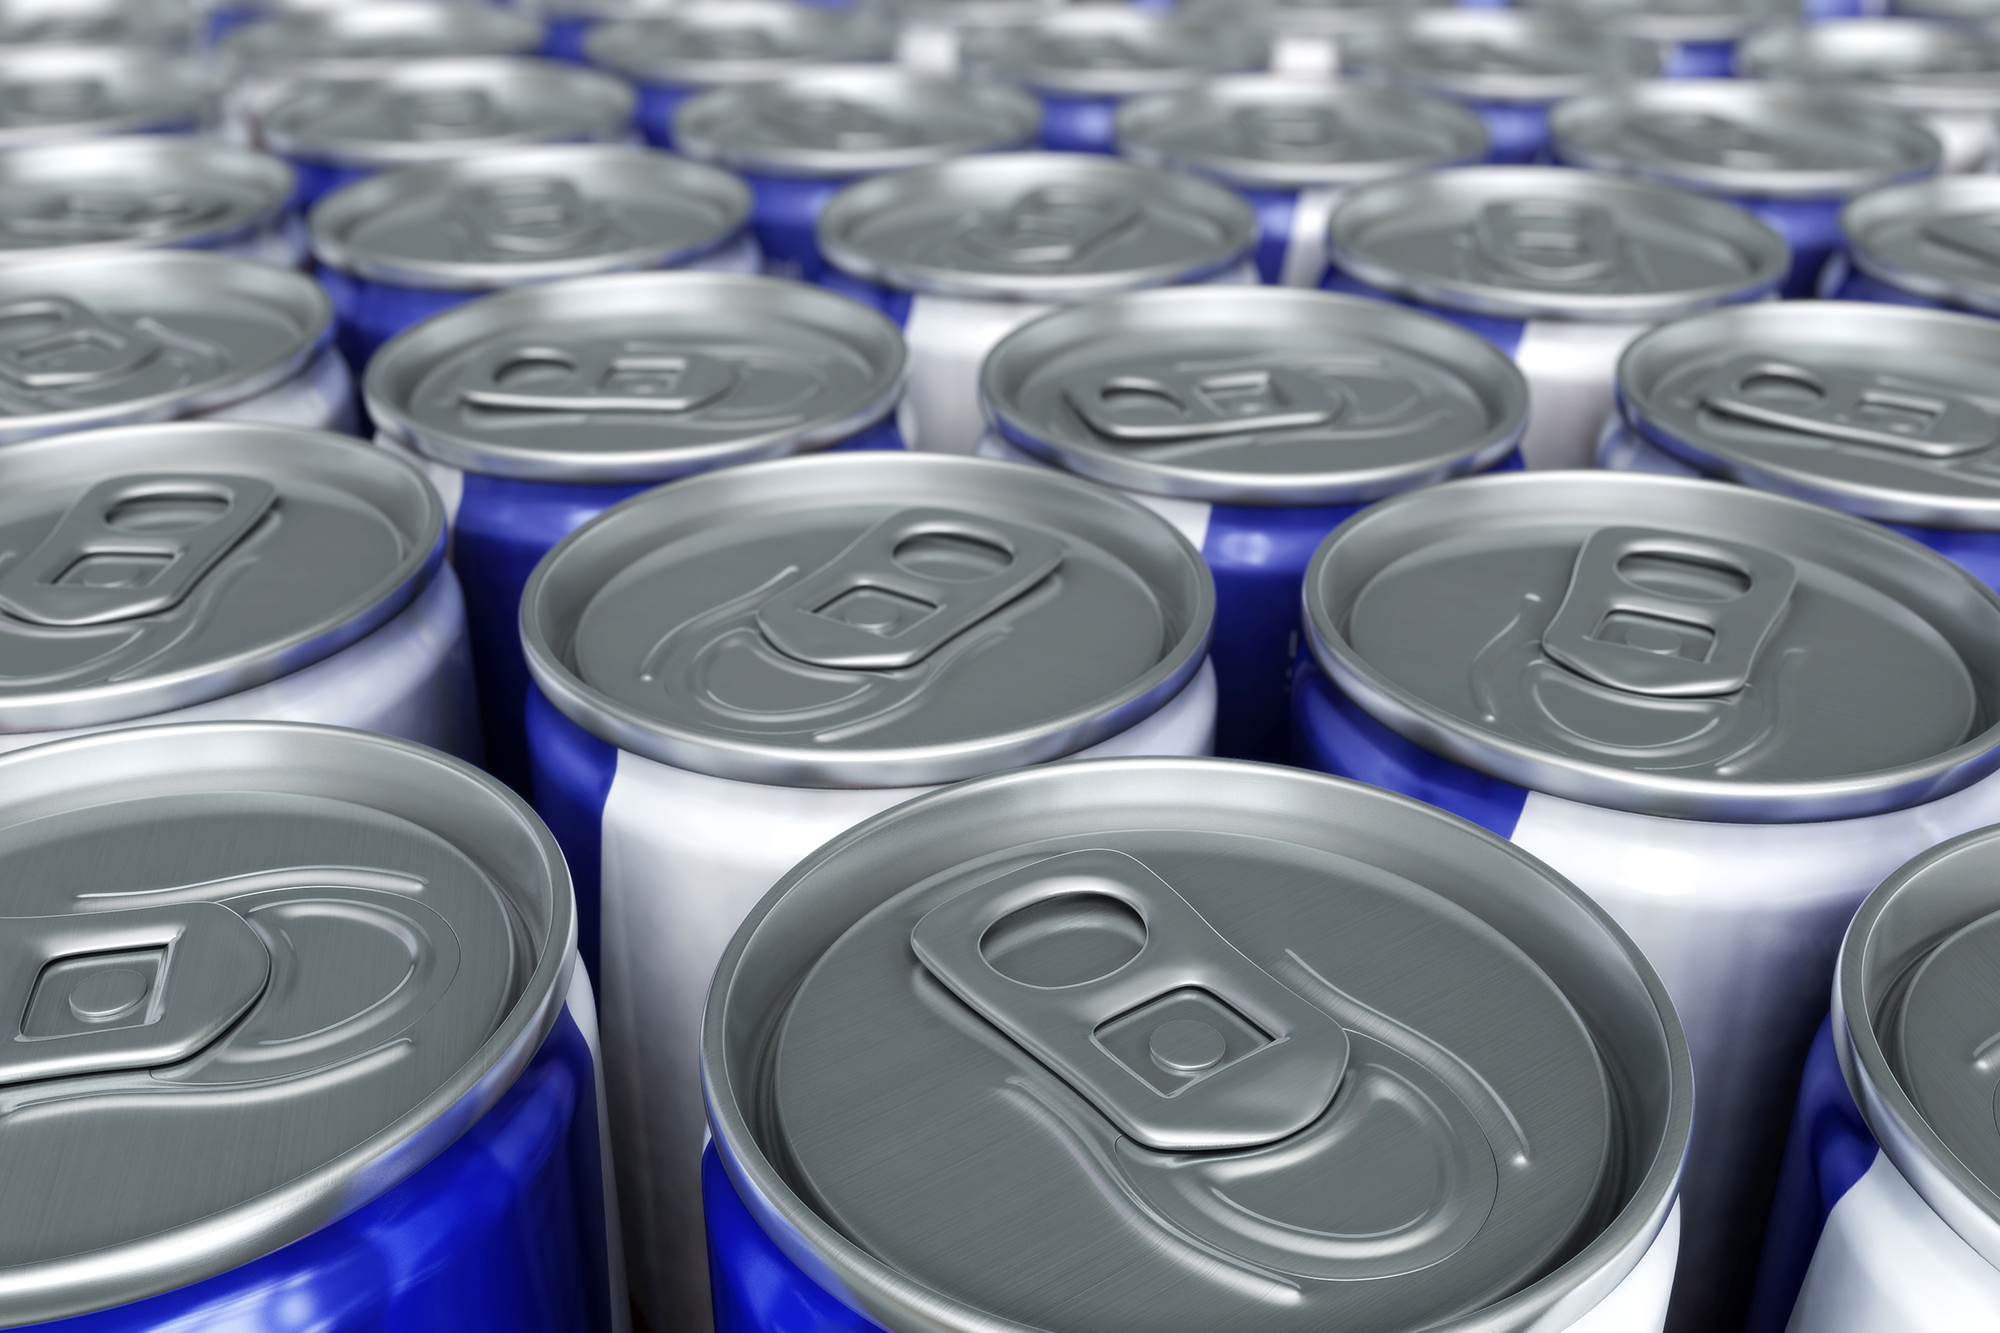 Top view of many cans of energy drinks on a table together.